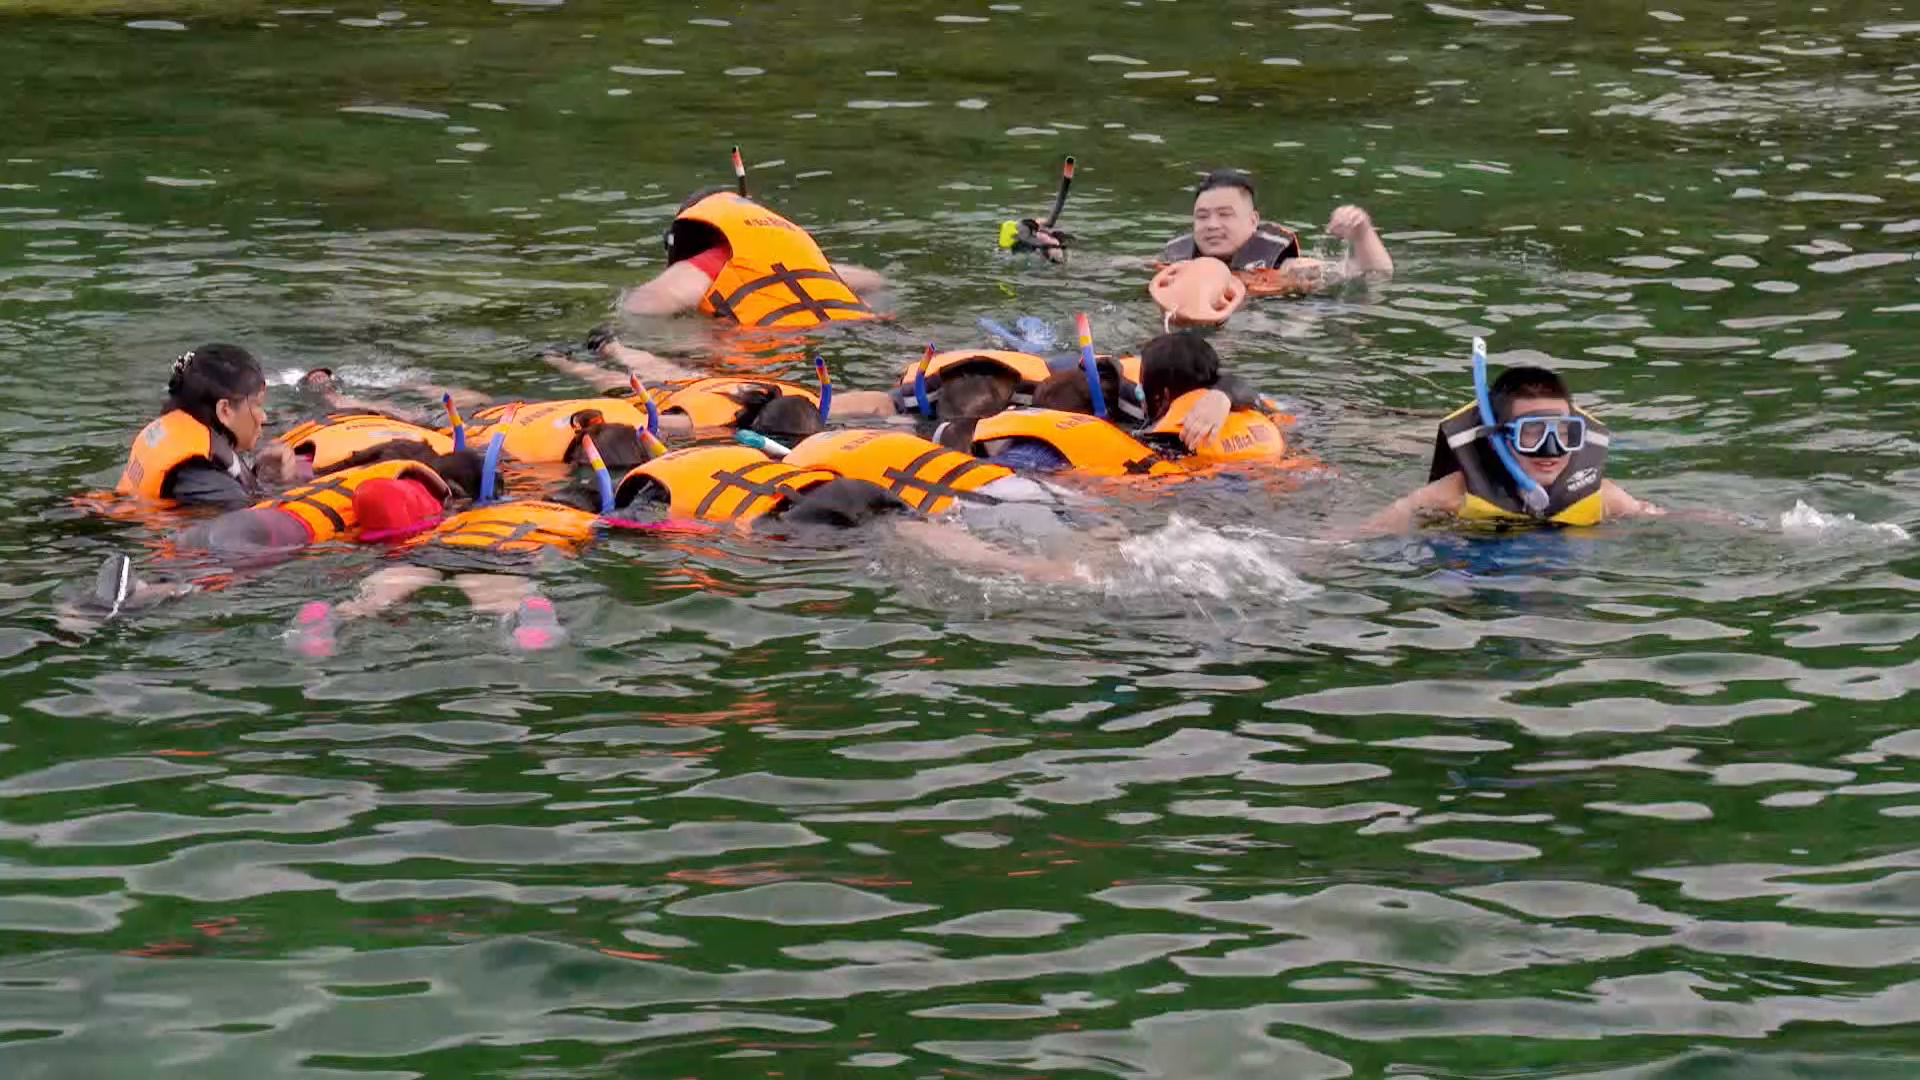 The Guides are stunned by shipwreck snorkelling experience